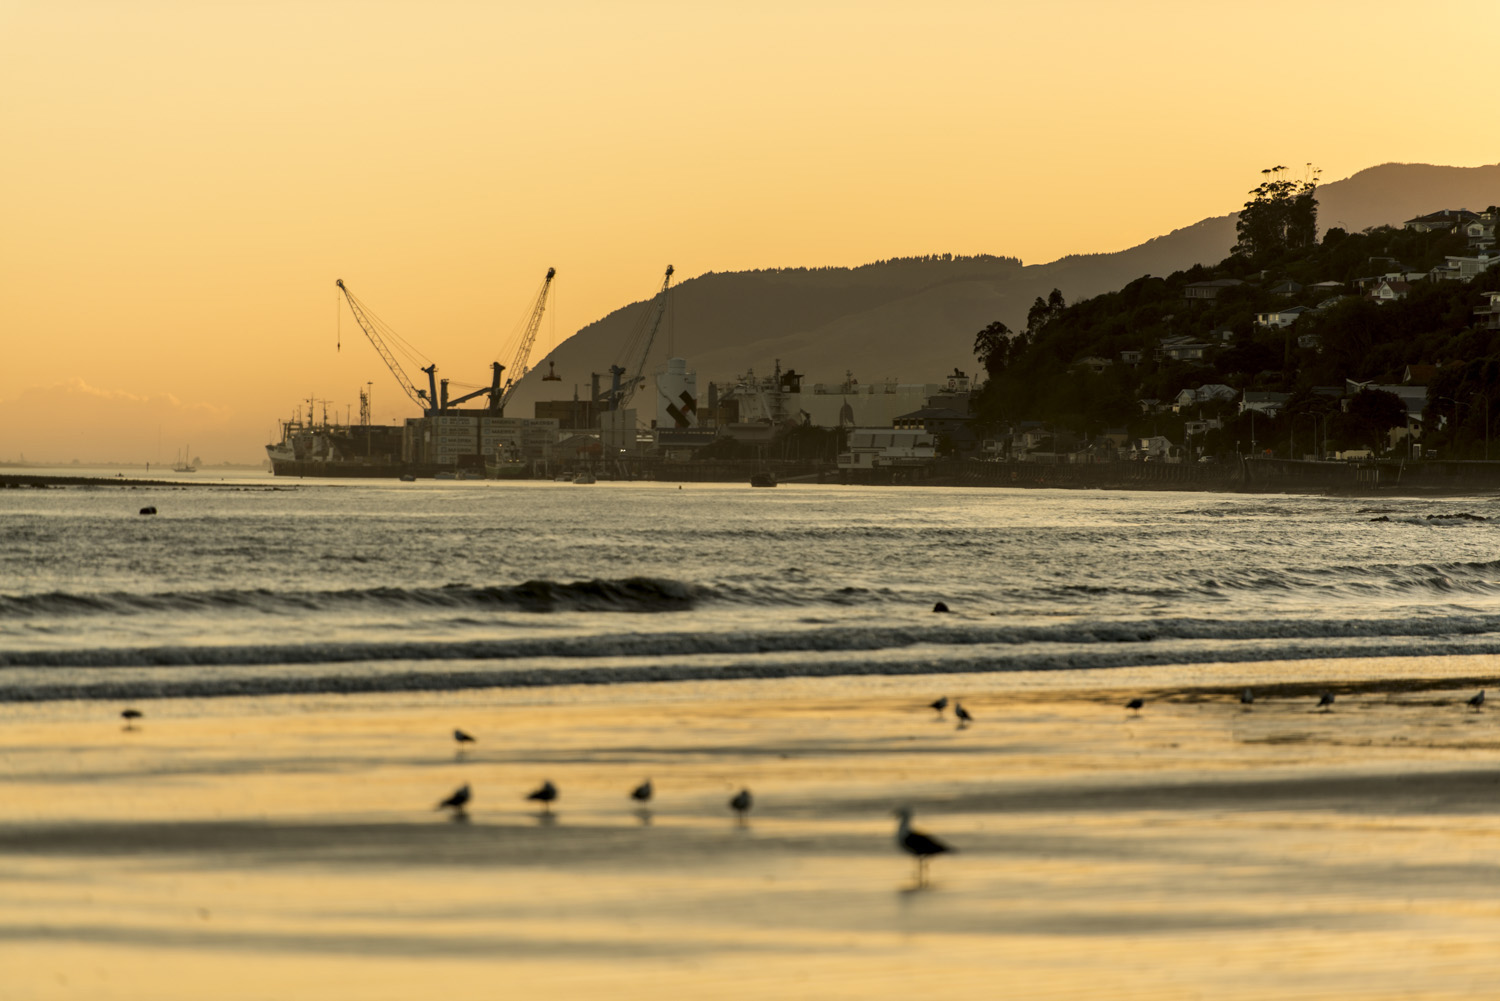 image of AARONTAIT COPYRIGHTED 2014 275 DOCUMENTARY PHOTOGRAPHER NEW ZEALAND EDITORIAL REPORTAGE CUSTOMER ENVIRONMENTAL HUMAN RESOURCES INTERVIEW REAL NATURAL LIGHT BEACH HARBOUR PORT SEAGULLS SUNRISE ENVIRONM